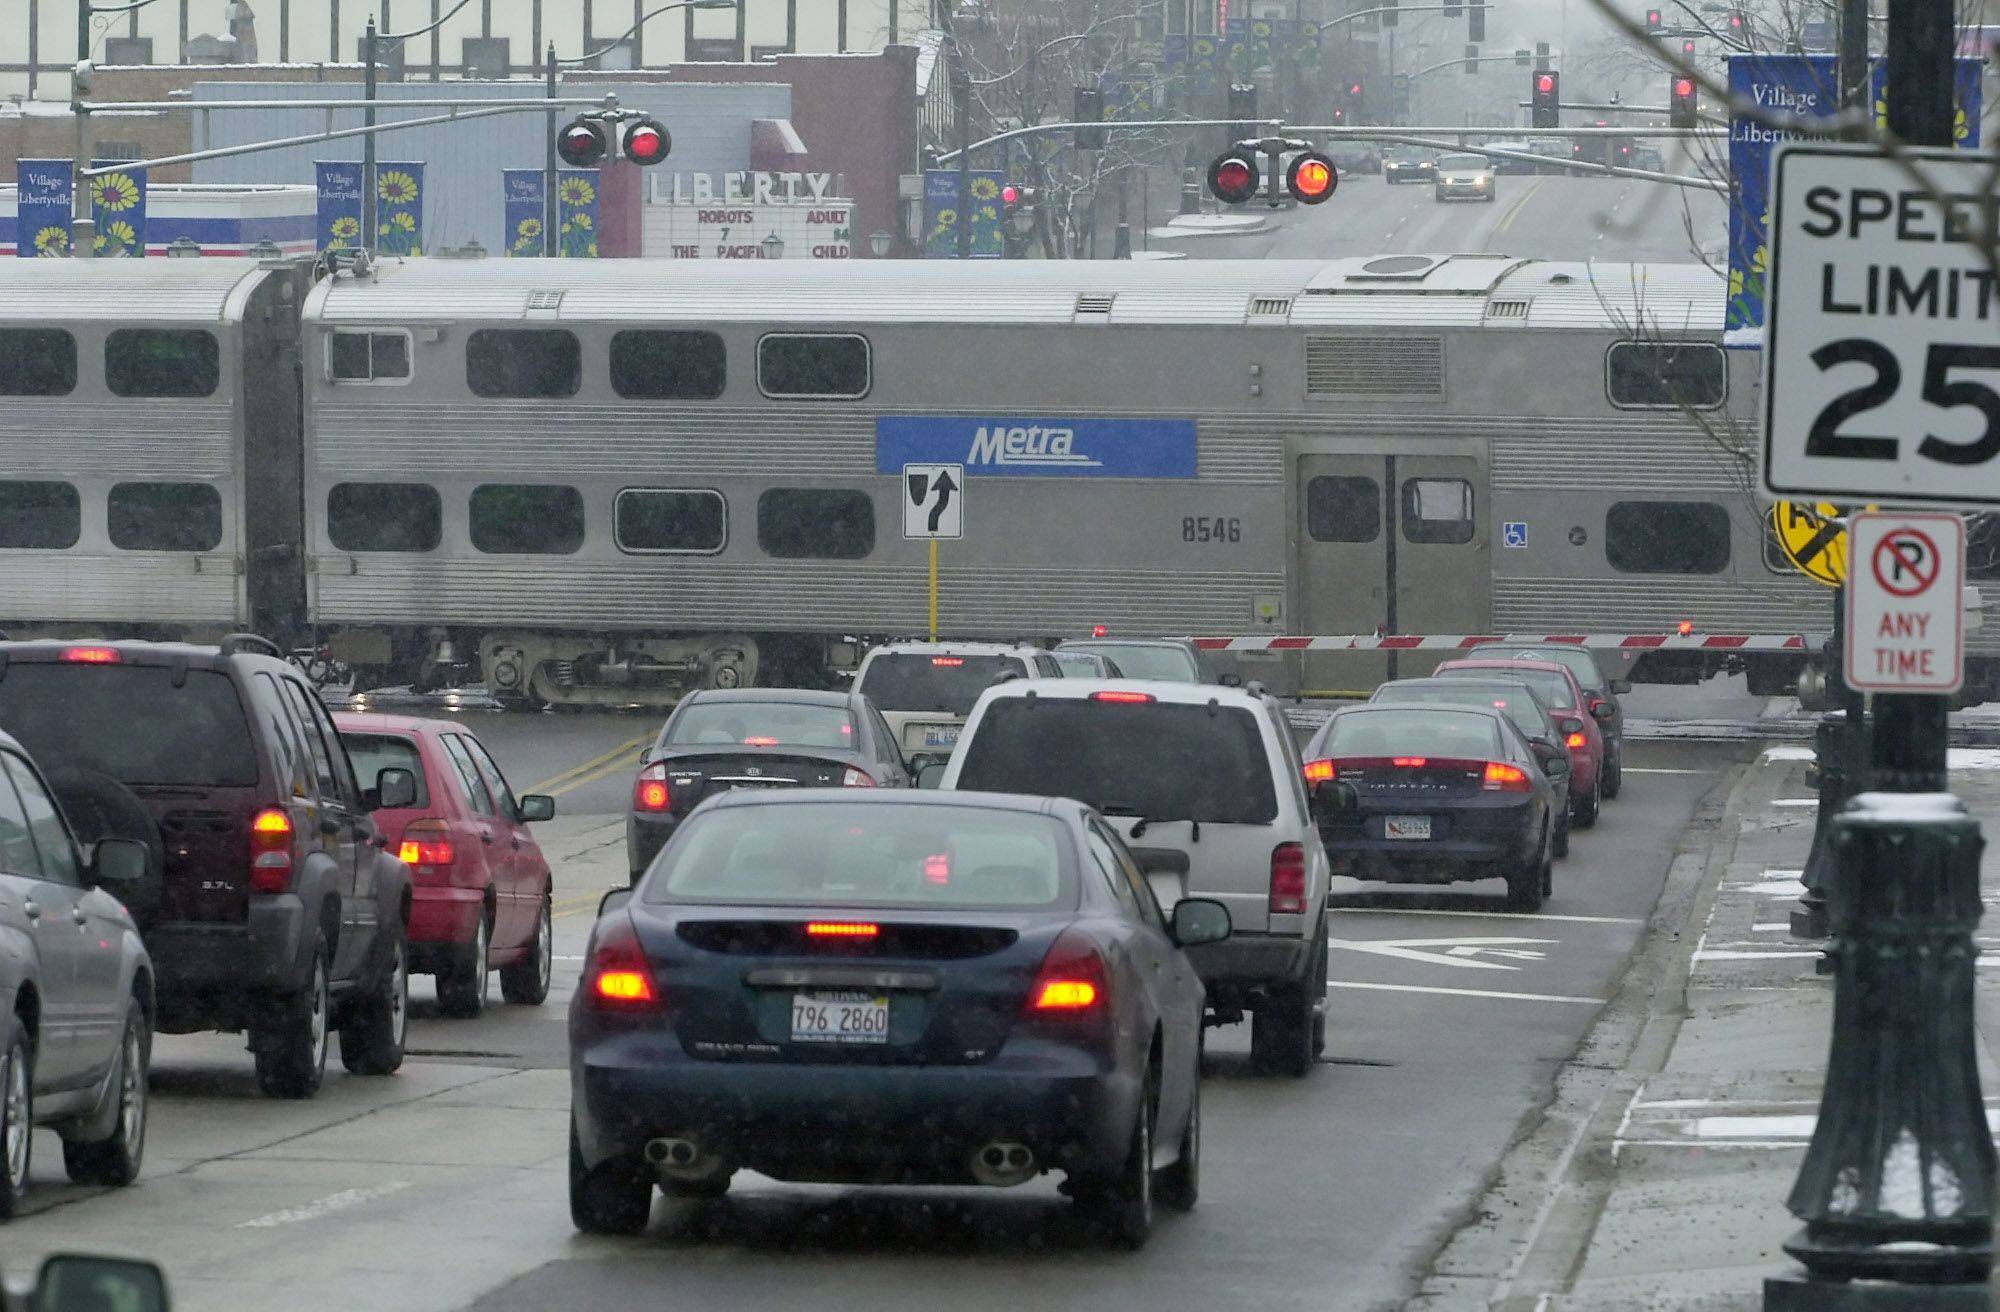 Commuting by car or by train as well as parking in Chicago and even showering could become more expensive if a variety of rate hikes are approved that some complain are targeting suburban residents.